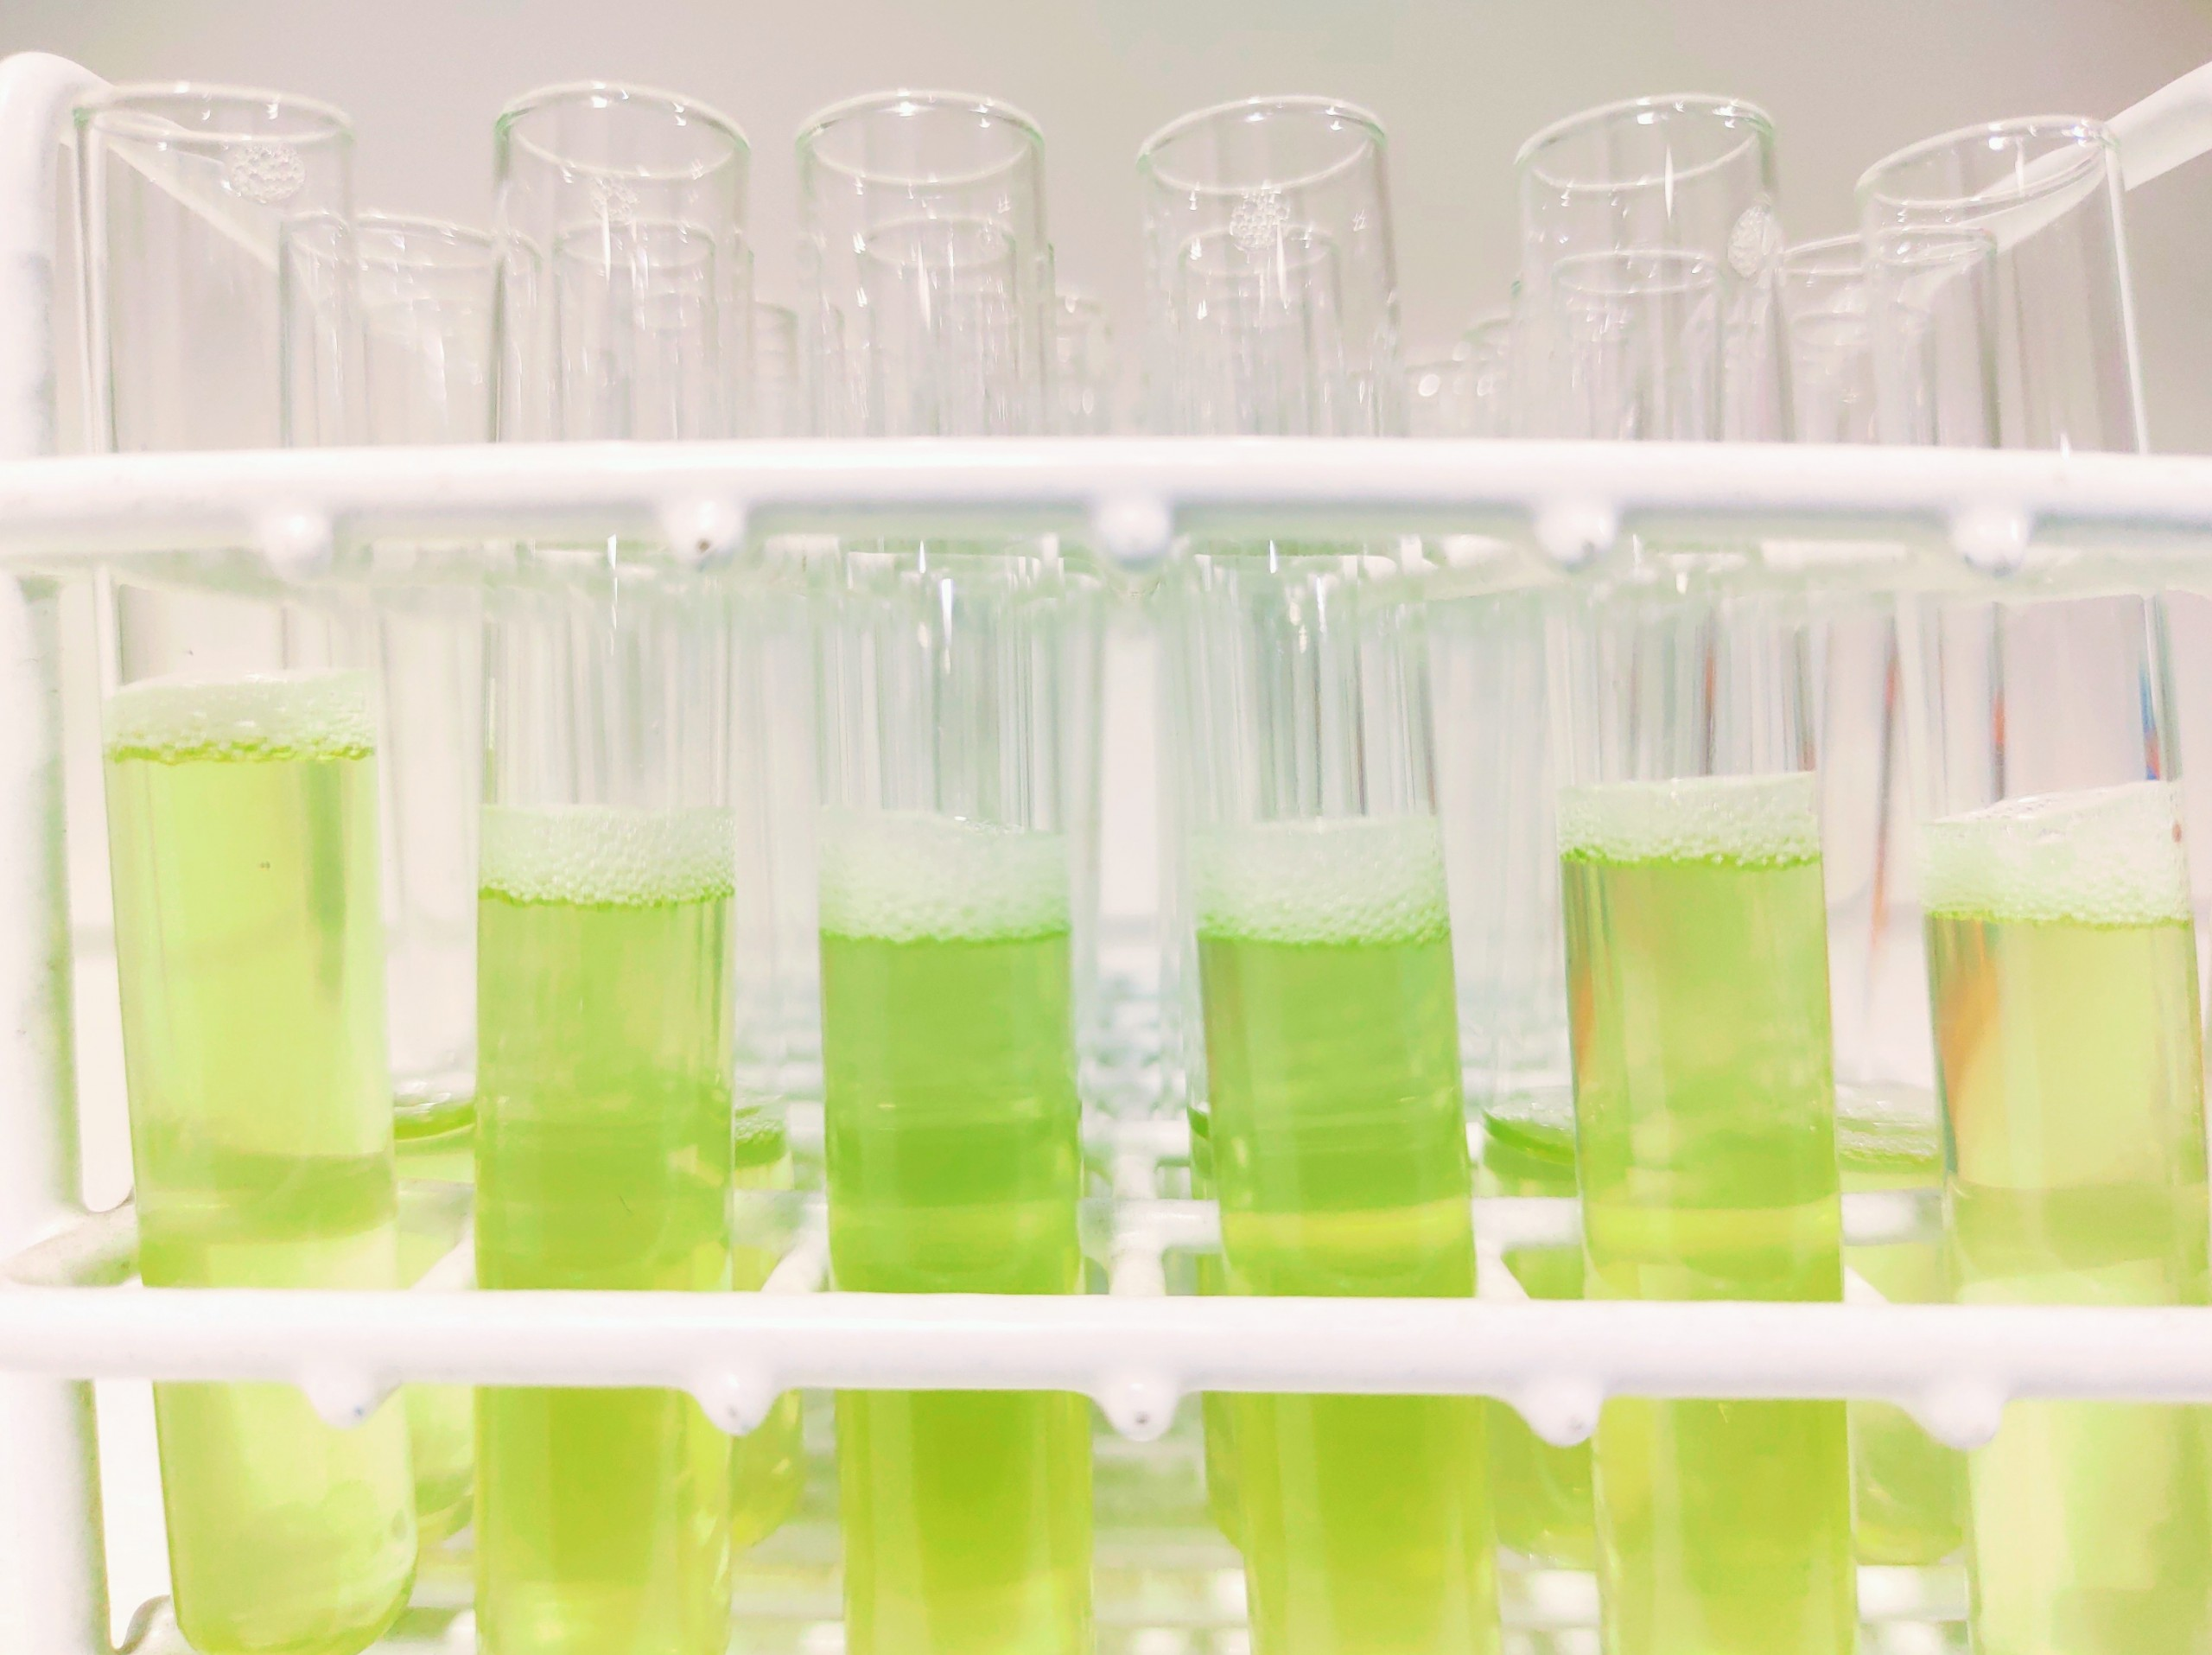 Screening of an aqueous plant extract library for antibiotic activities